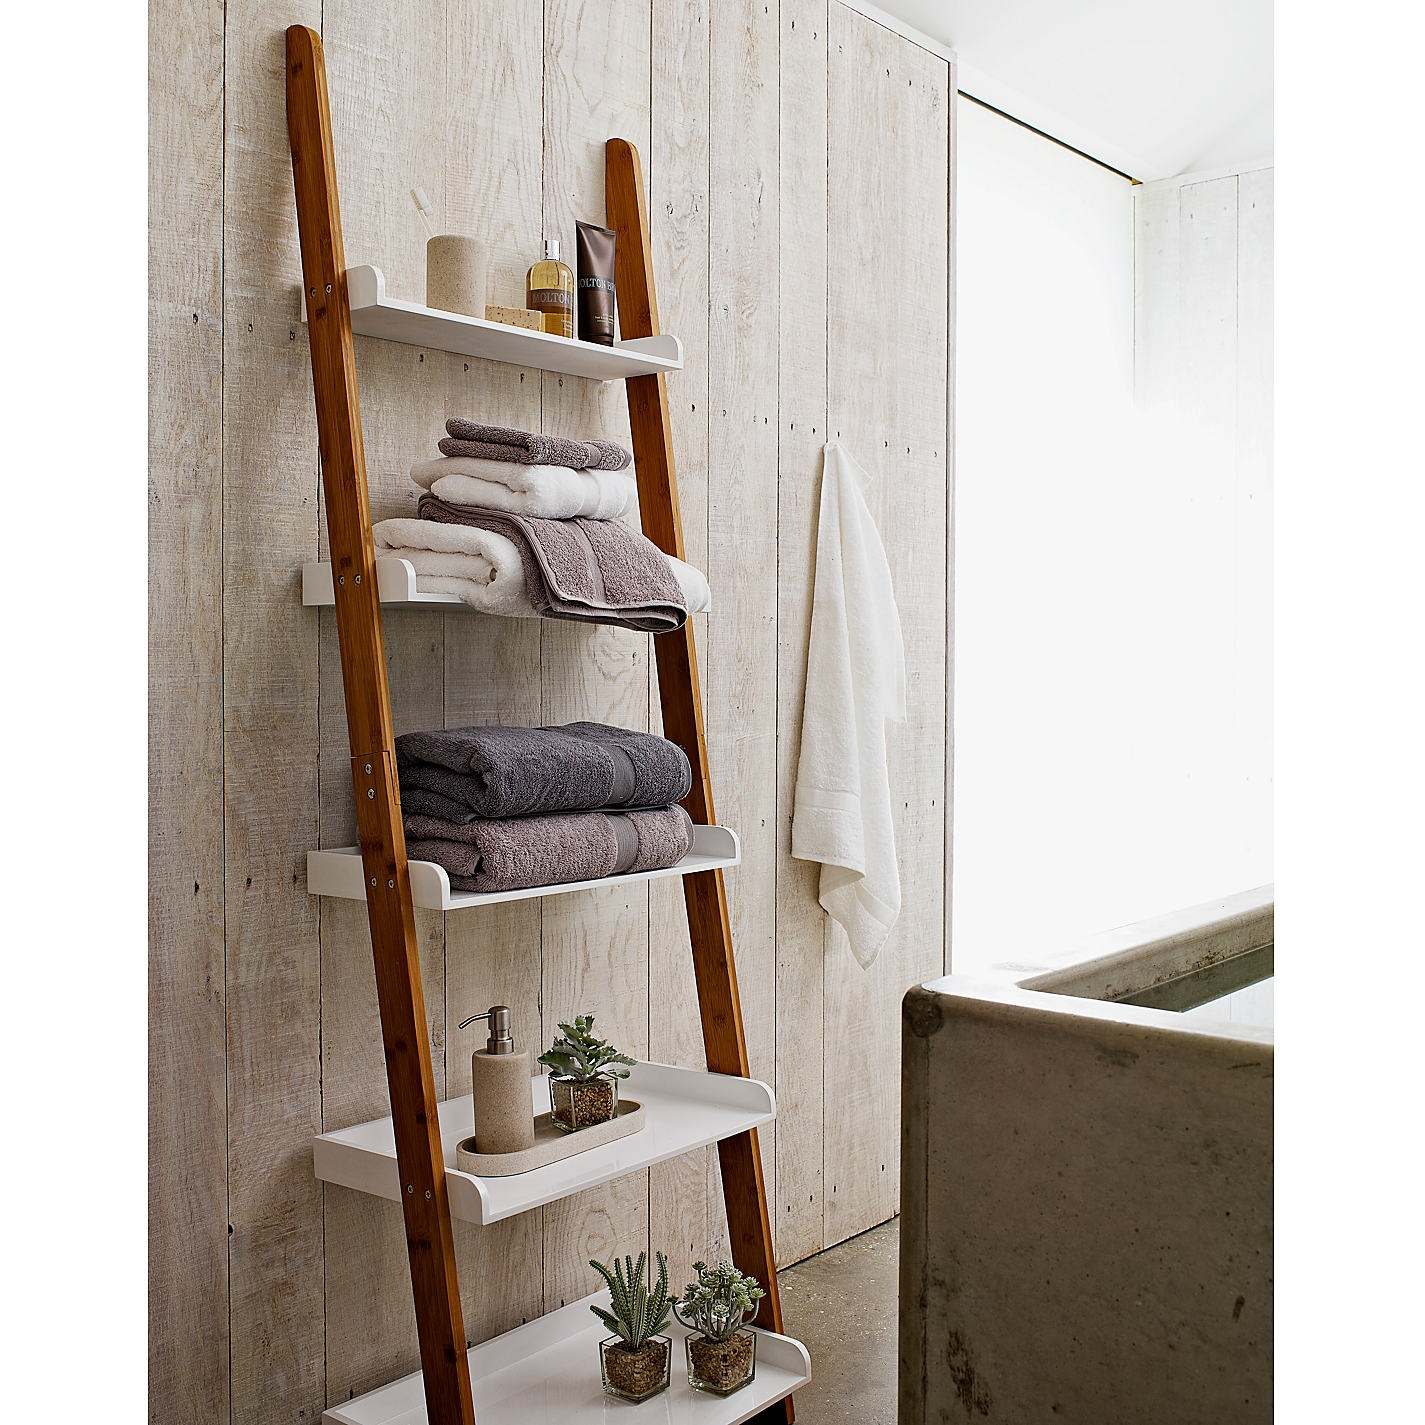 Bathroom Ladder Shelf Whitefurniture white brown wooden leaning ladder shelf for towel in